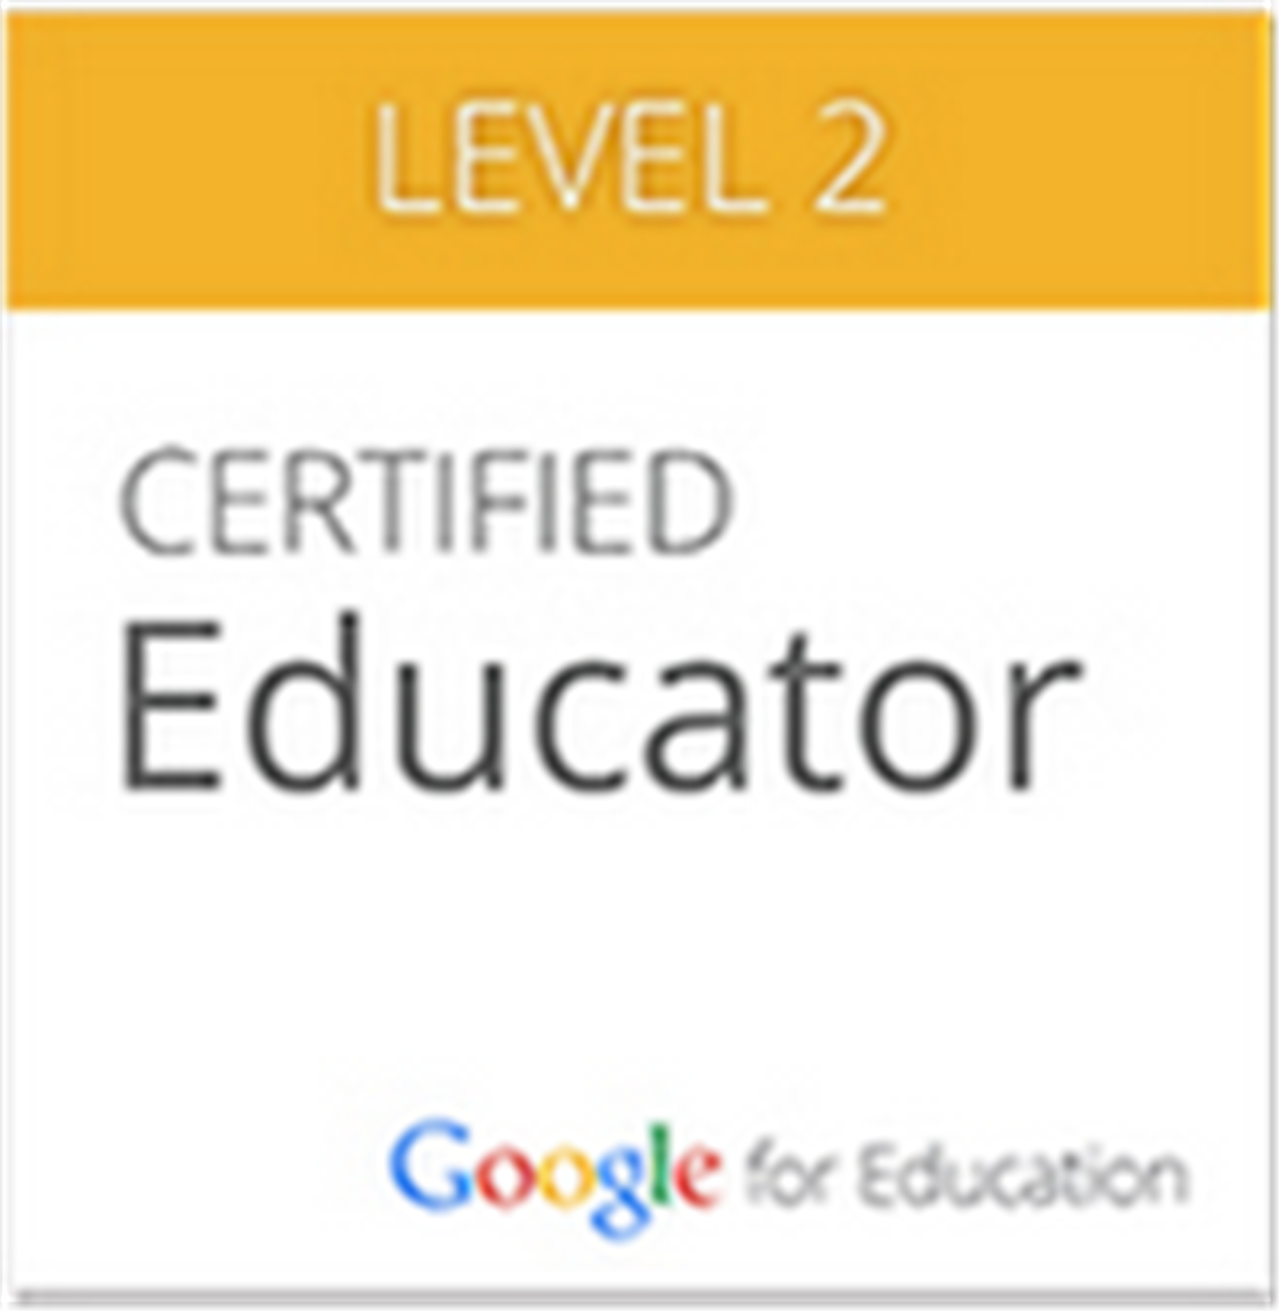 Google Certification Level 2 Bronx Ny